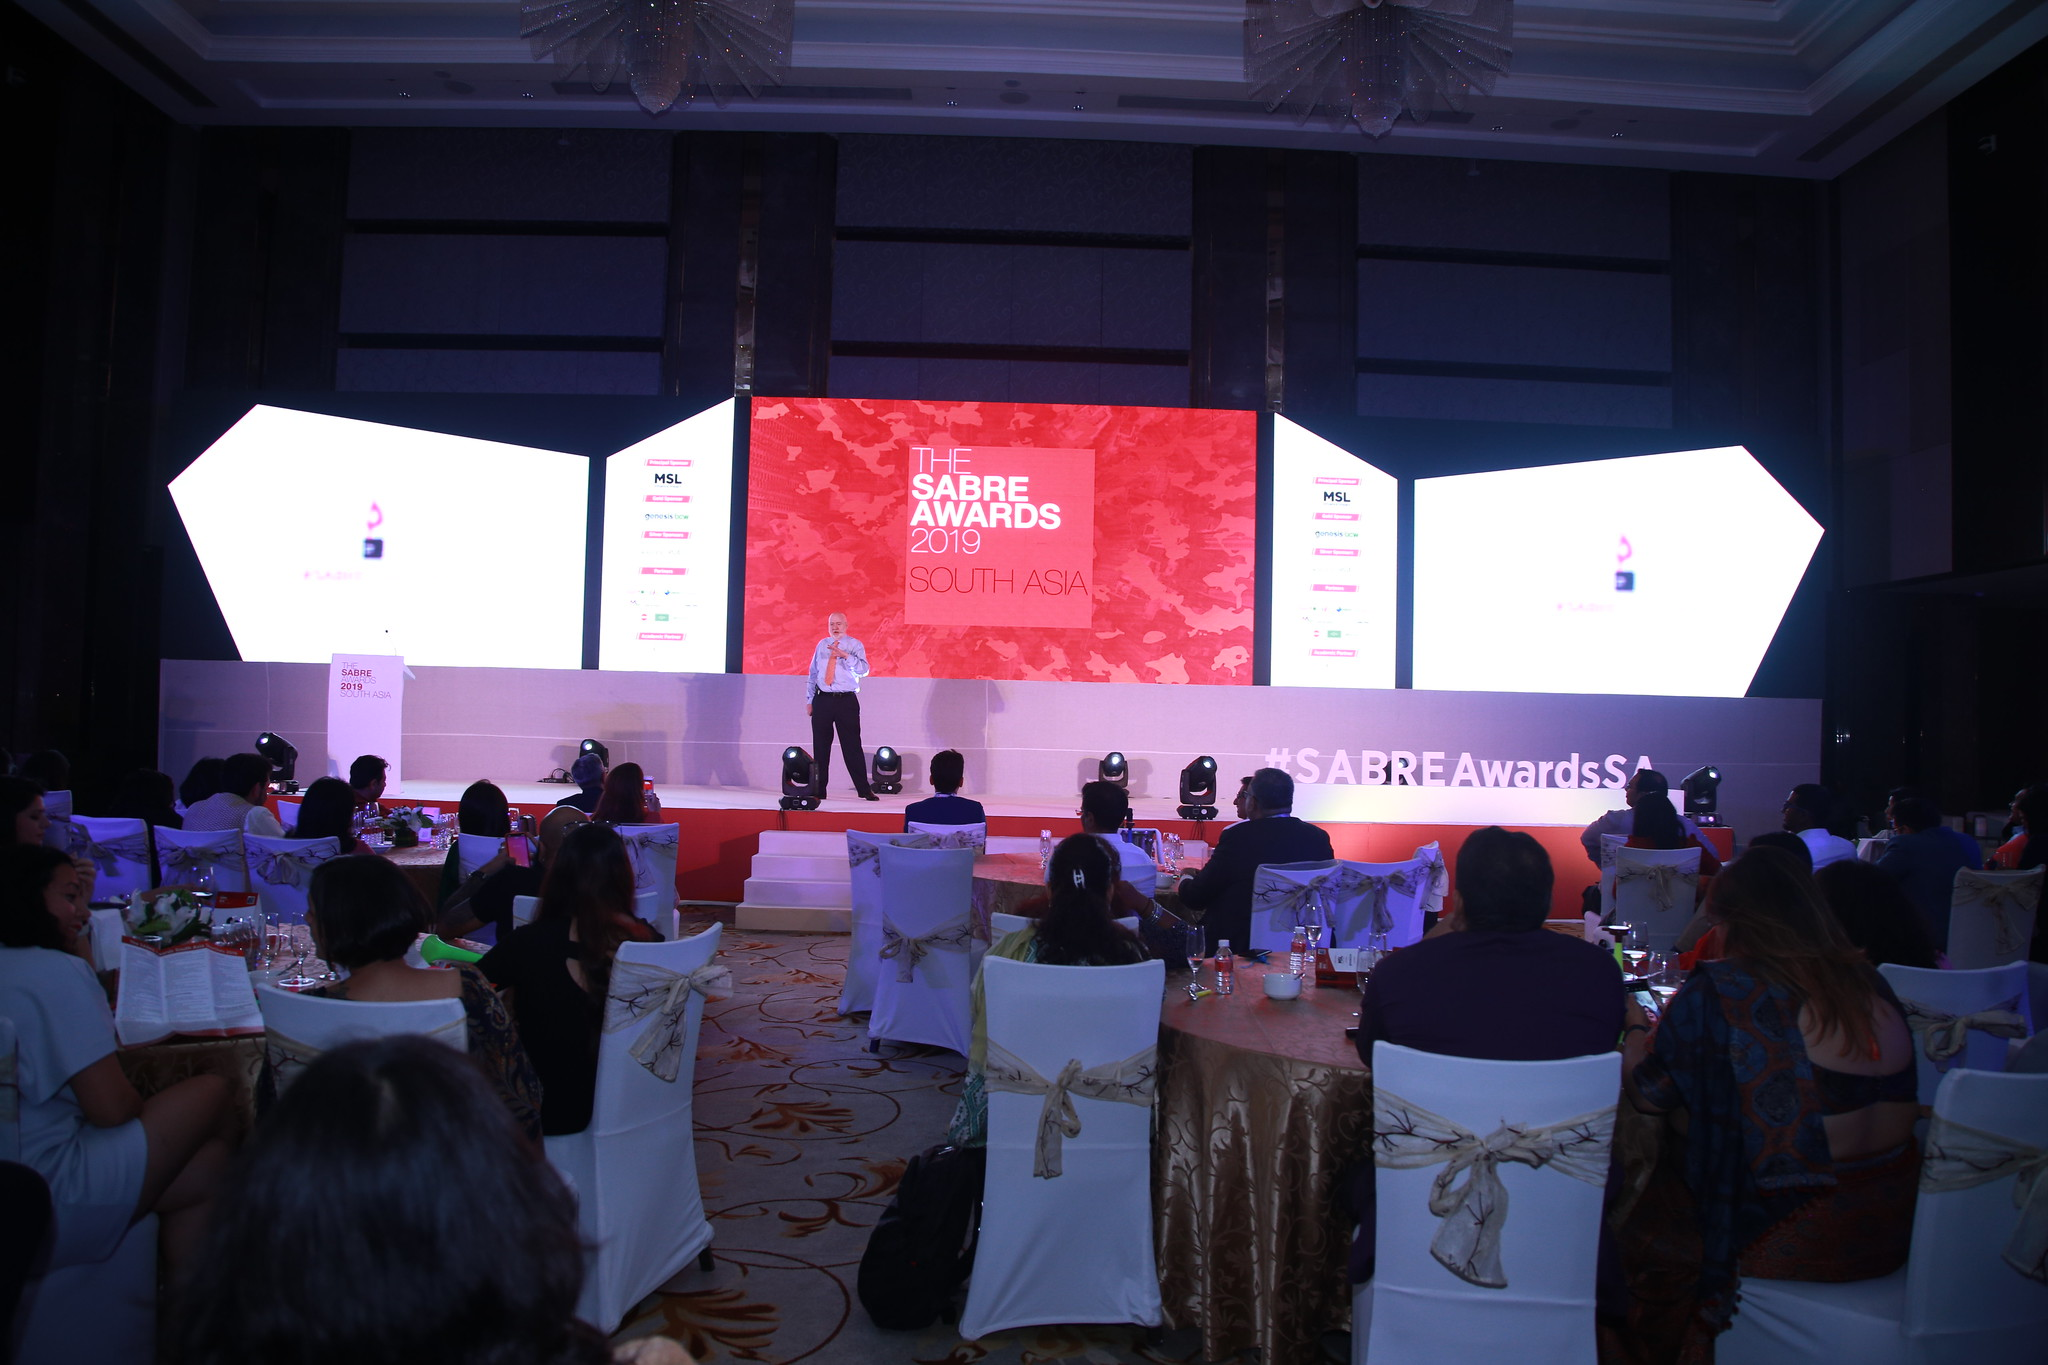 In Pictures: 2019 SABRE Awards South Asia